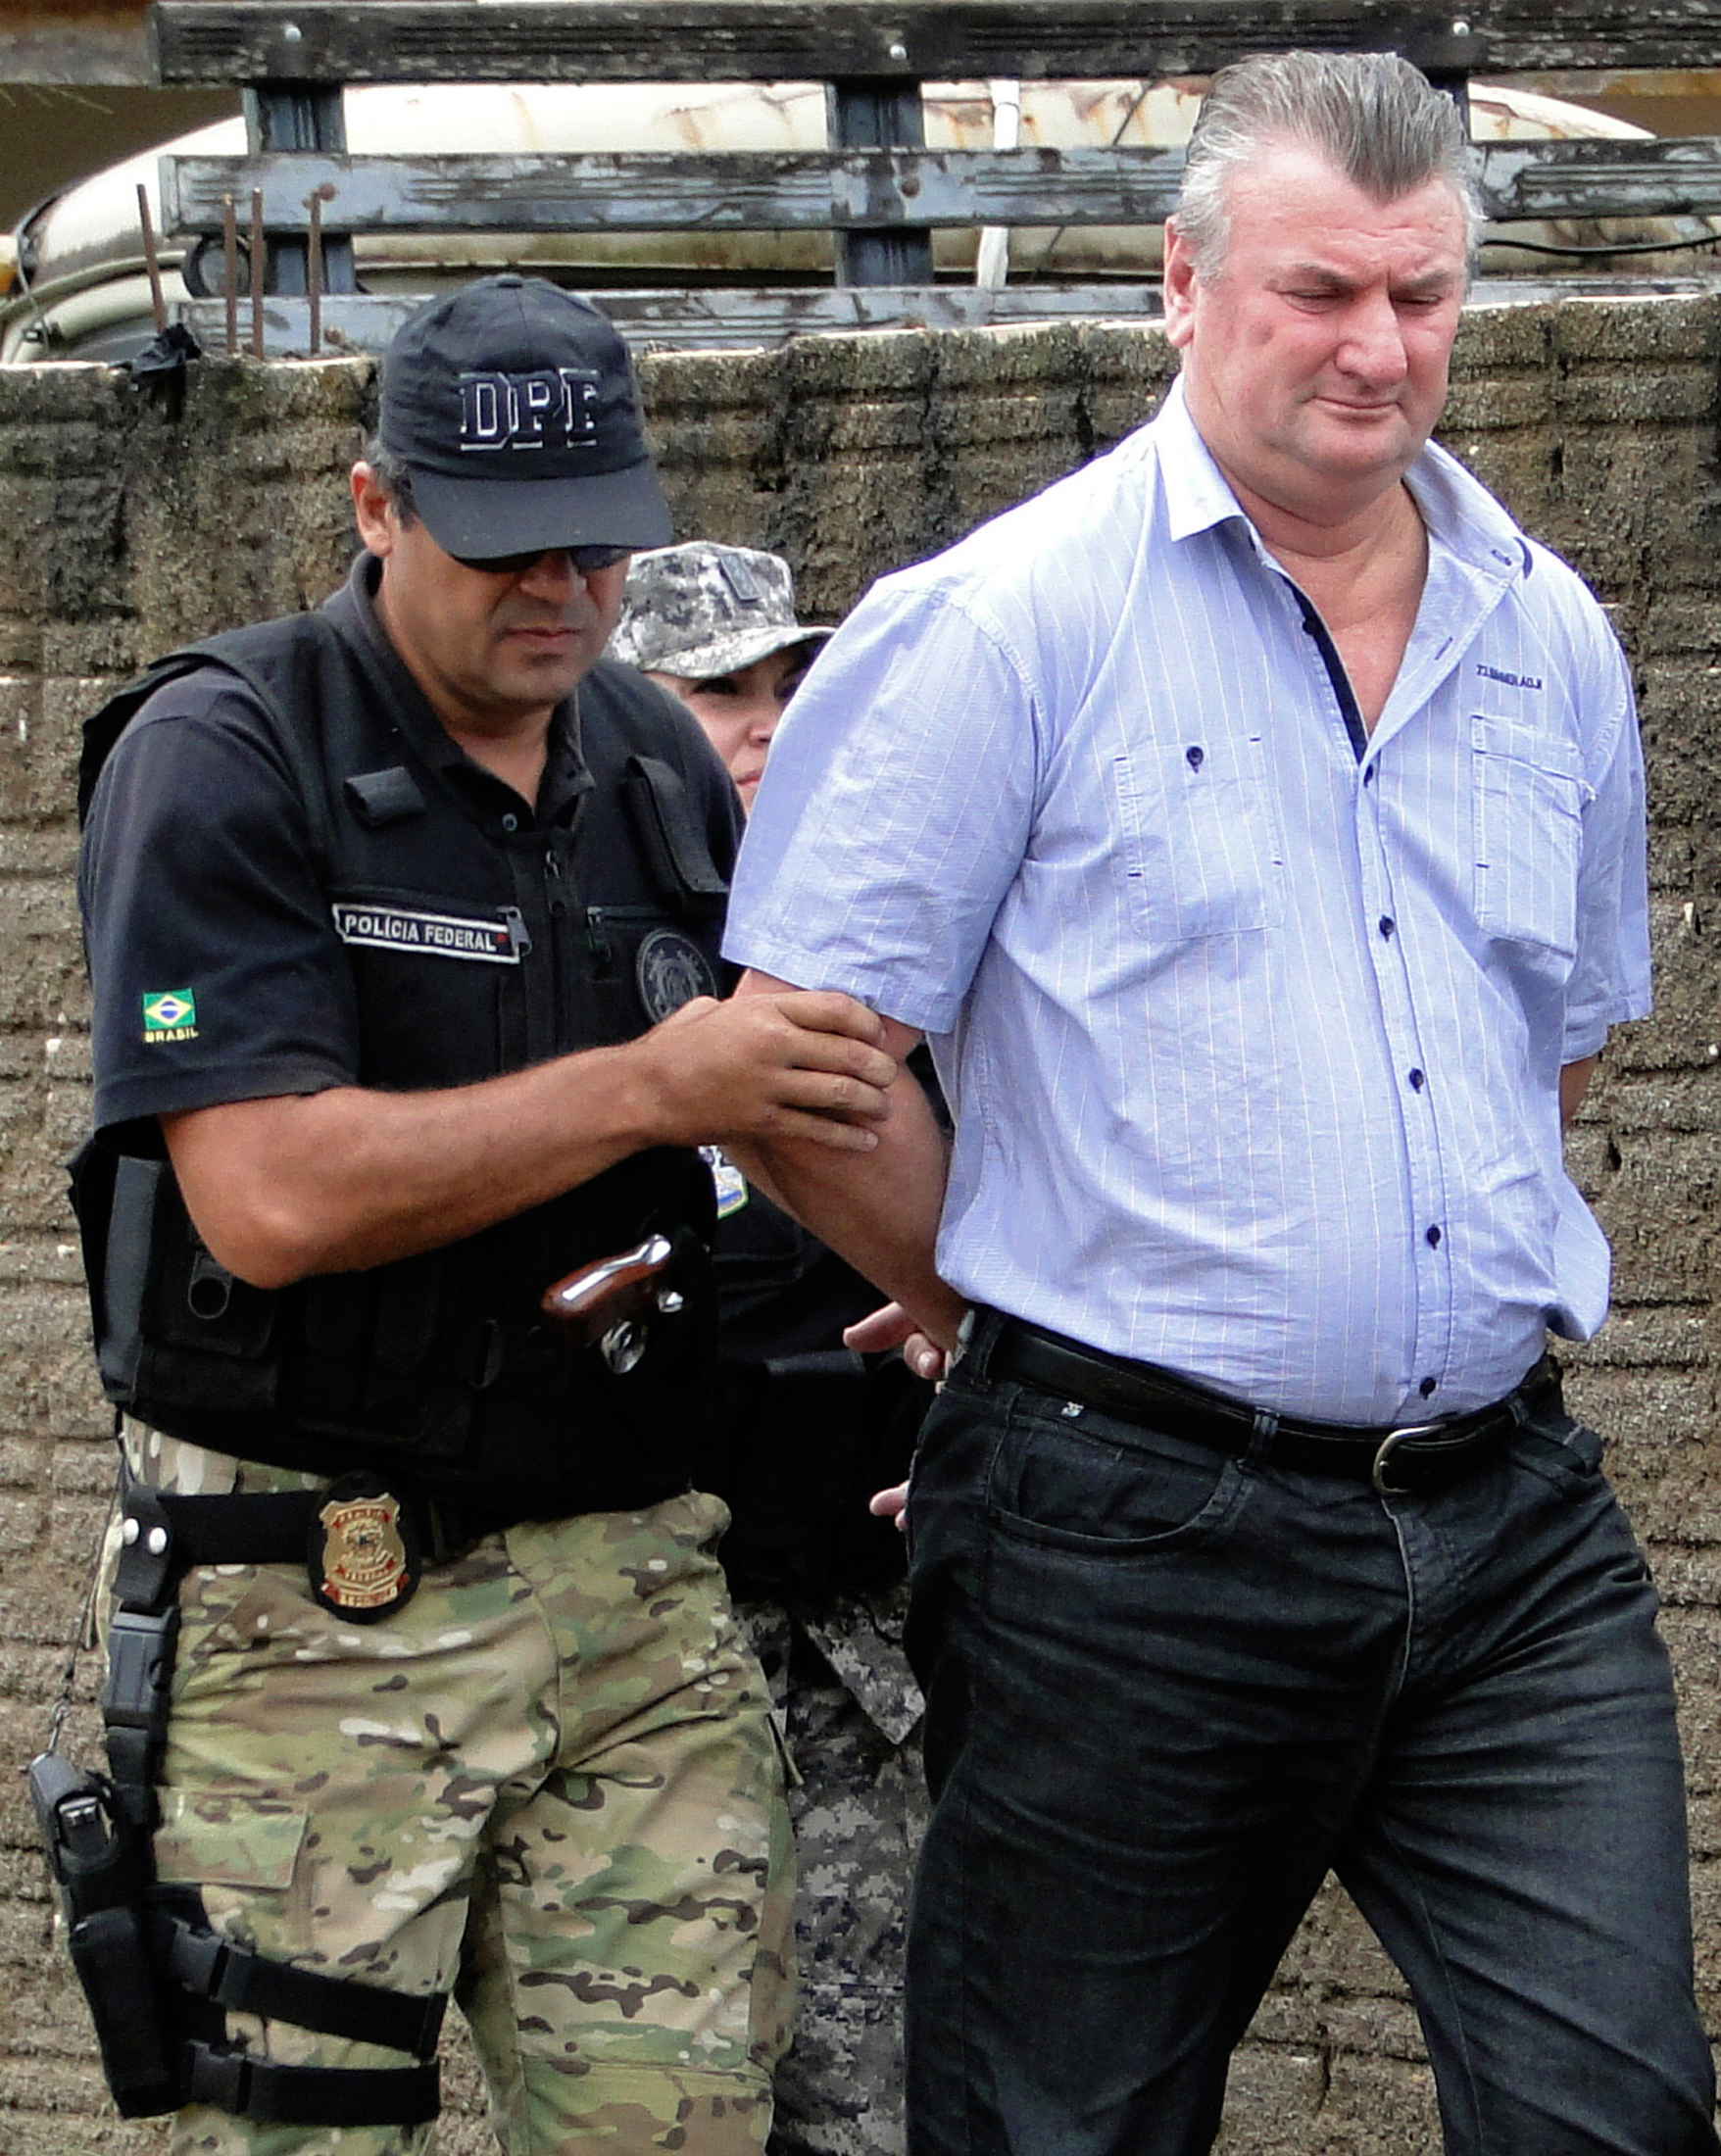 Ezequiel Antonio Castanha (R), who is accused of illegally destroying tens of thousands of square kilometres of Amazon forest, walks with a federal police officer in Novo Progresso in the northern state of Para February 22, 2015. Castanha was arrested in Para on Monday following a six-month joint operation involving federal police, the public ministry and Brazil's environmental protection agency, the Institute of Environment and Renewable Natural Resources (IBAMA), said. The environmental damage has been estimated to be in the hundreds of millions of dollars. Once the public lands were cleared of forest, prosecutors say Castanha and the gang he worked with would illegally sell land plots to ranchers for as much as $6.95 million. Picture taken February 22, 2015. REUTERS/Folha do Progresso/Juliano Simionato (BRAZIL - Tags: ENVIRONMENT CRIME LAW TPX IMAGES OF THE DAY) - GM1EB2O1TC501